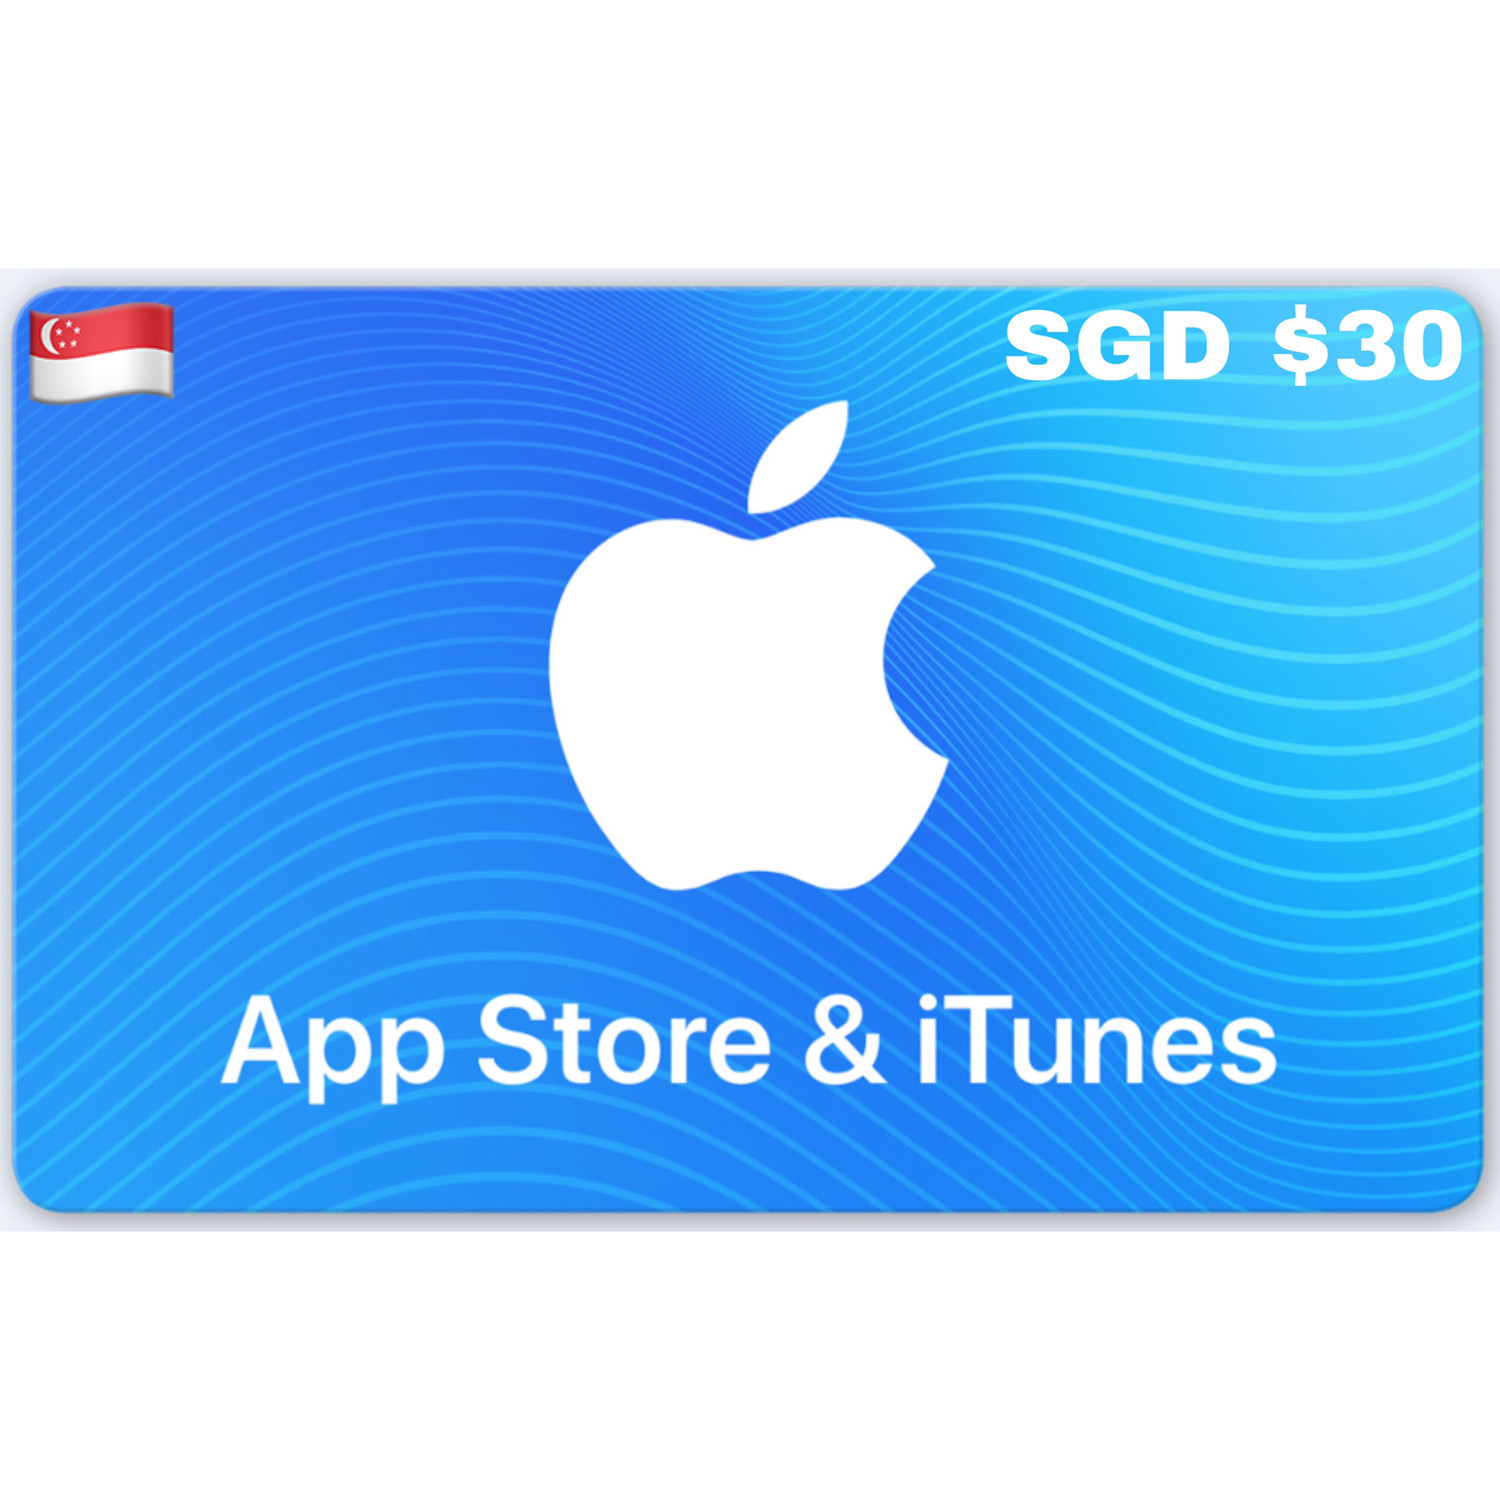 Apple iTunes Gift Card Singapore SGD $30